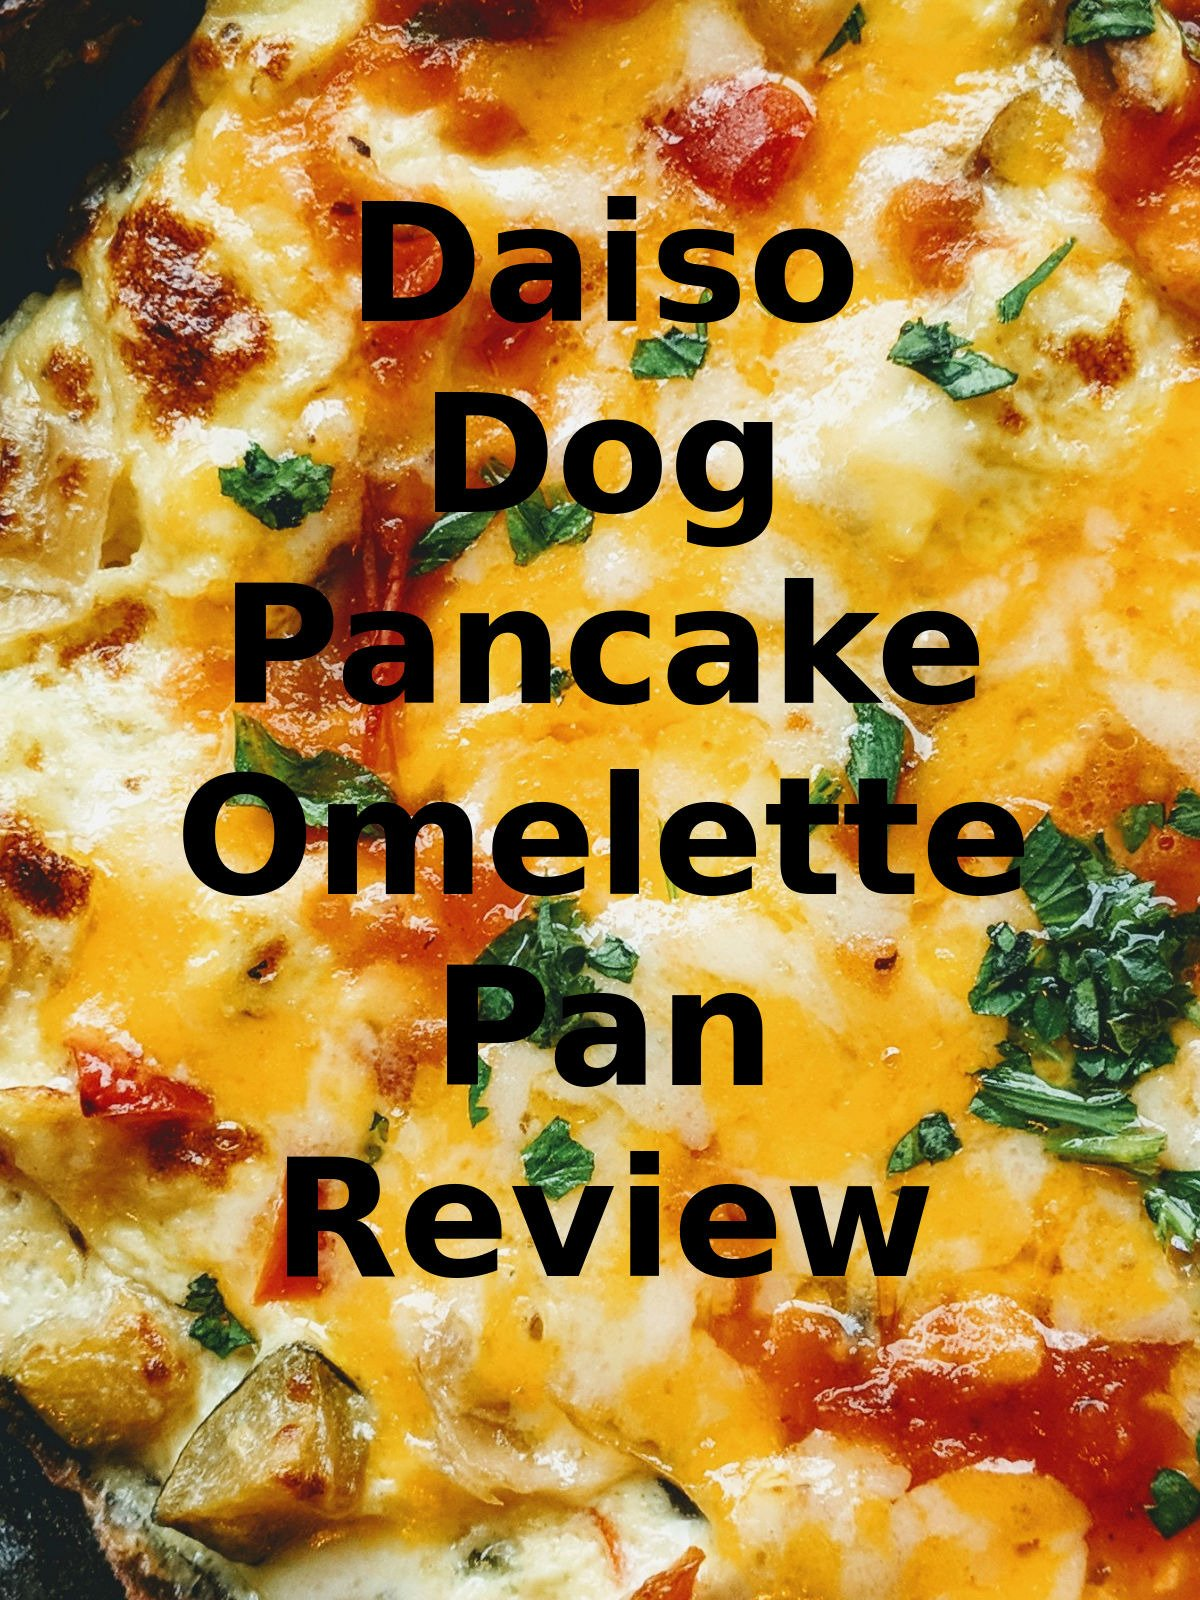 Review: Daiso Dog Pancake Omelette Pan Review on Amazon Prime Video UK